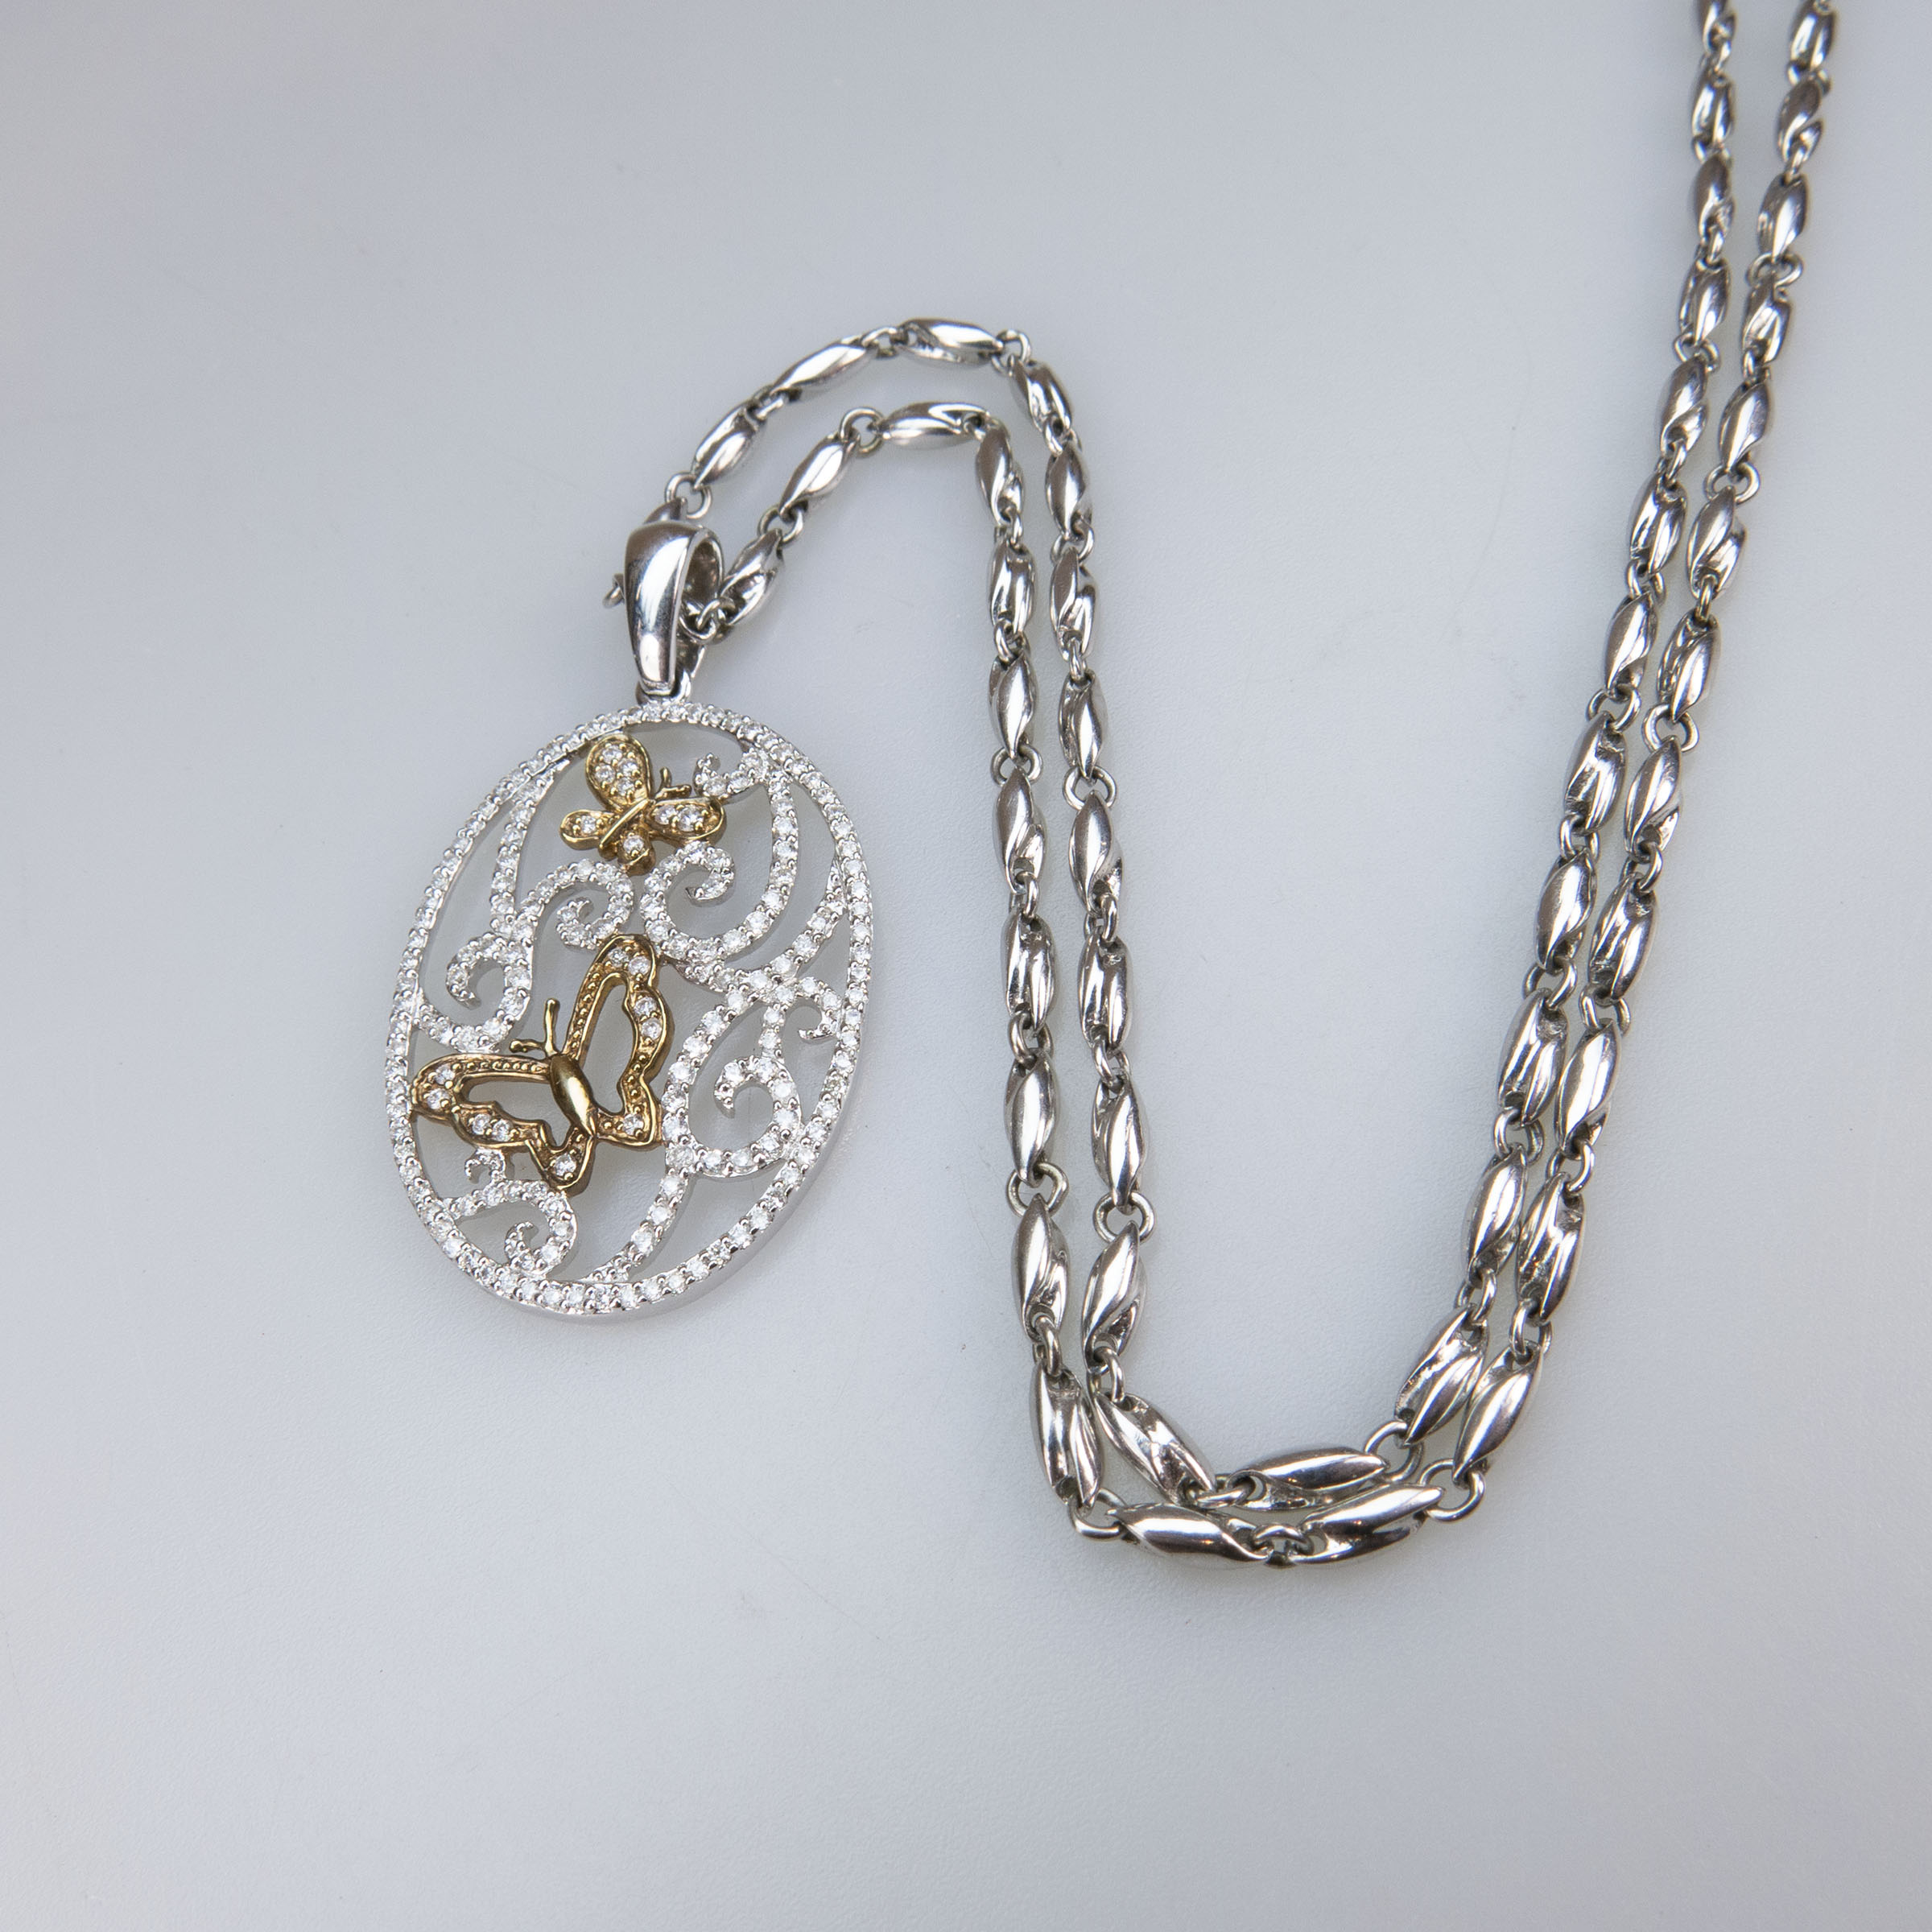 14k White And Yellow Gold Oval Pendant